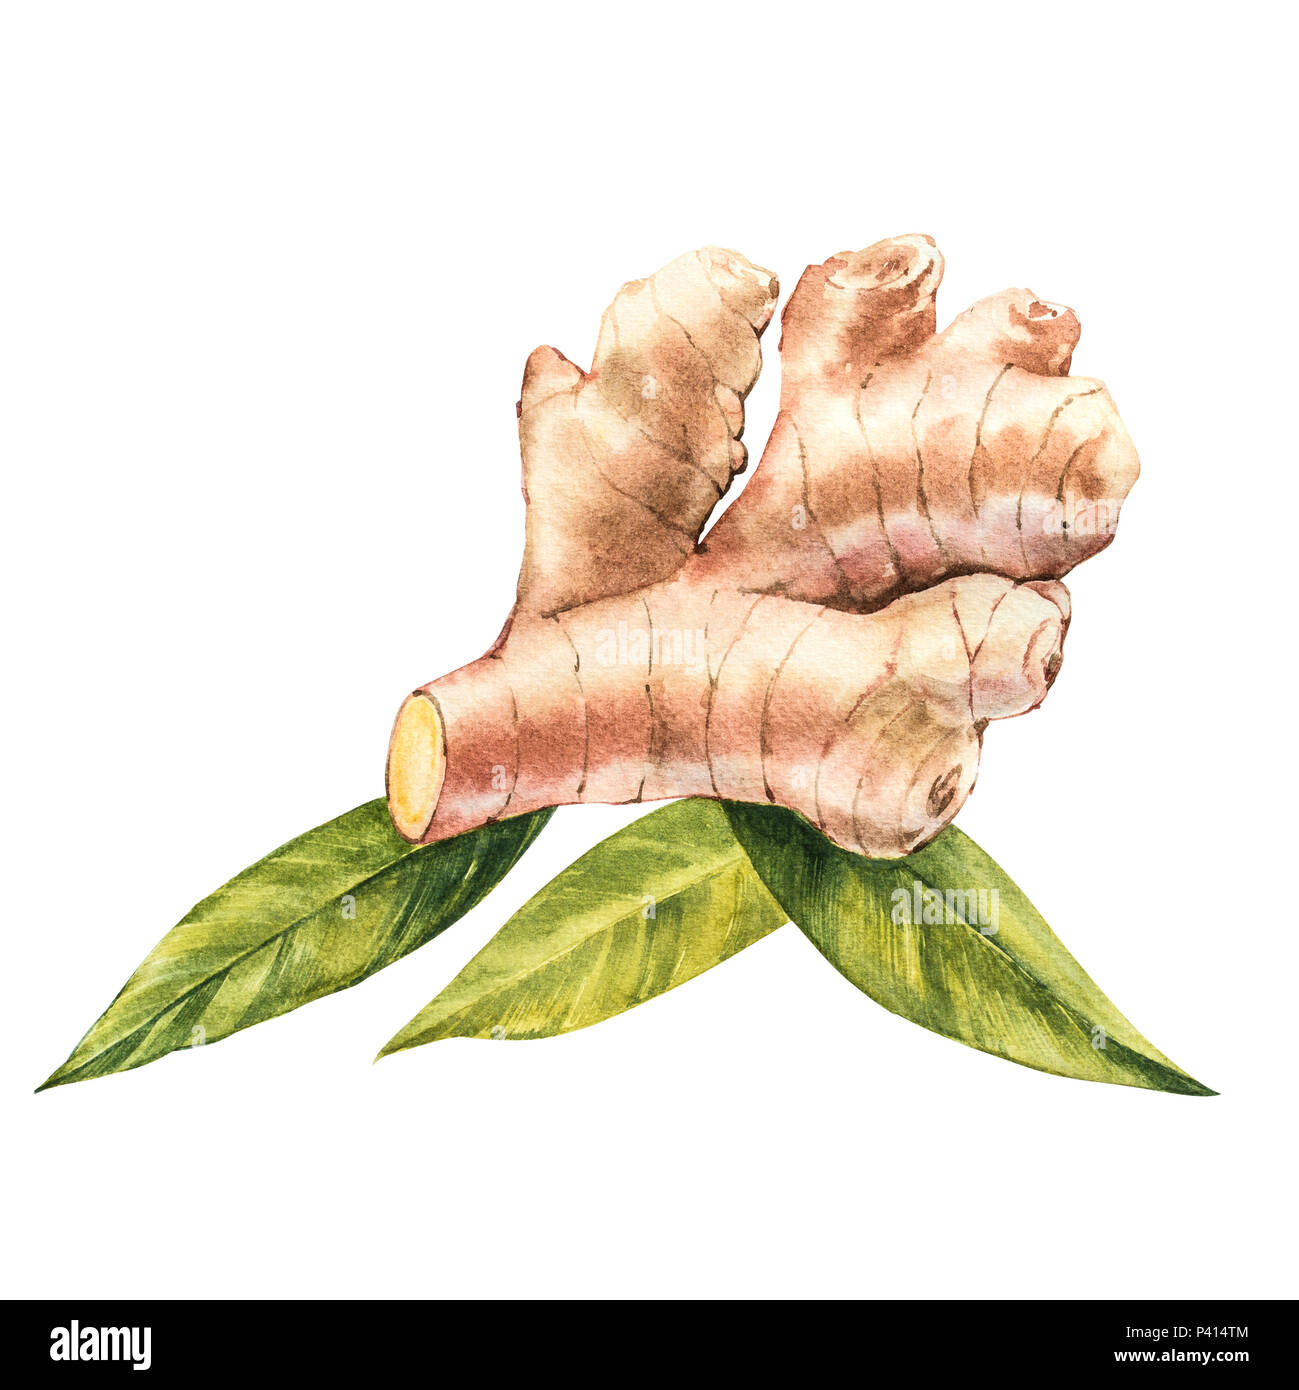 Hand Drawn Ginger watercolor sketch. Illustration For Food Design. - Stock Image